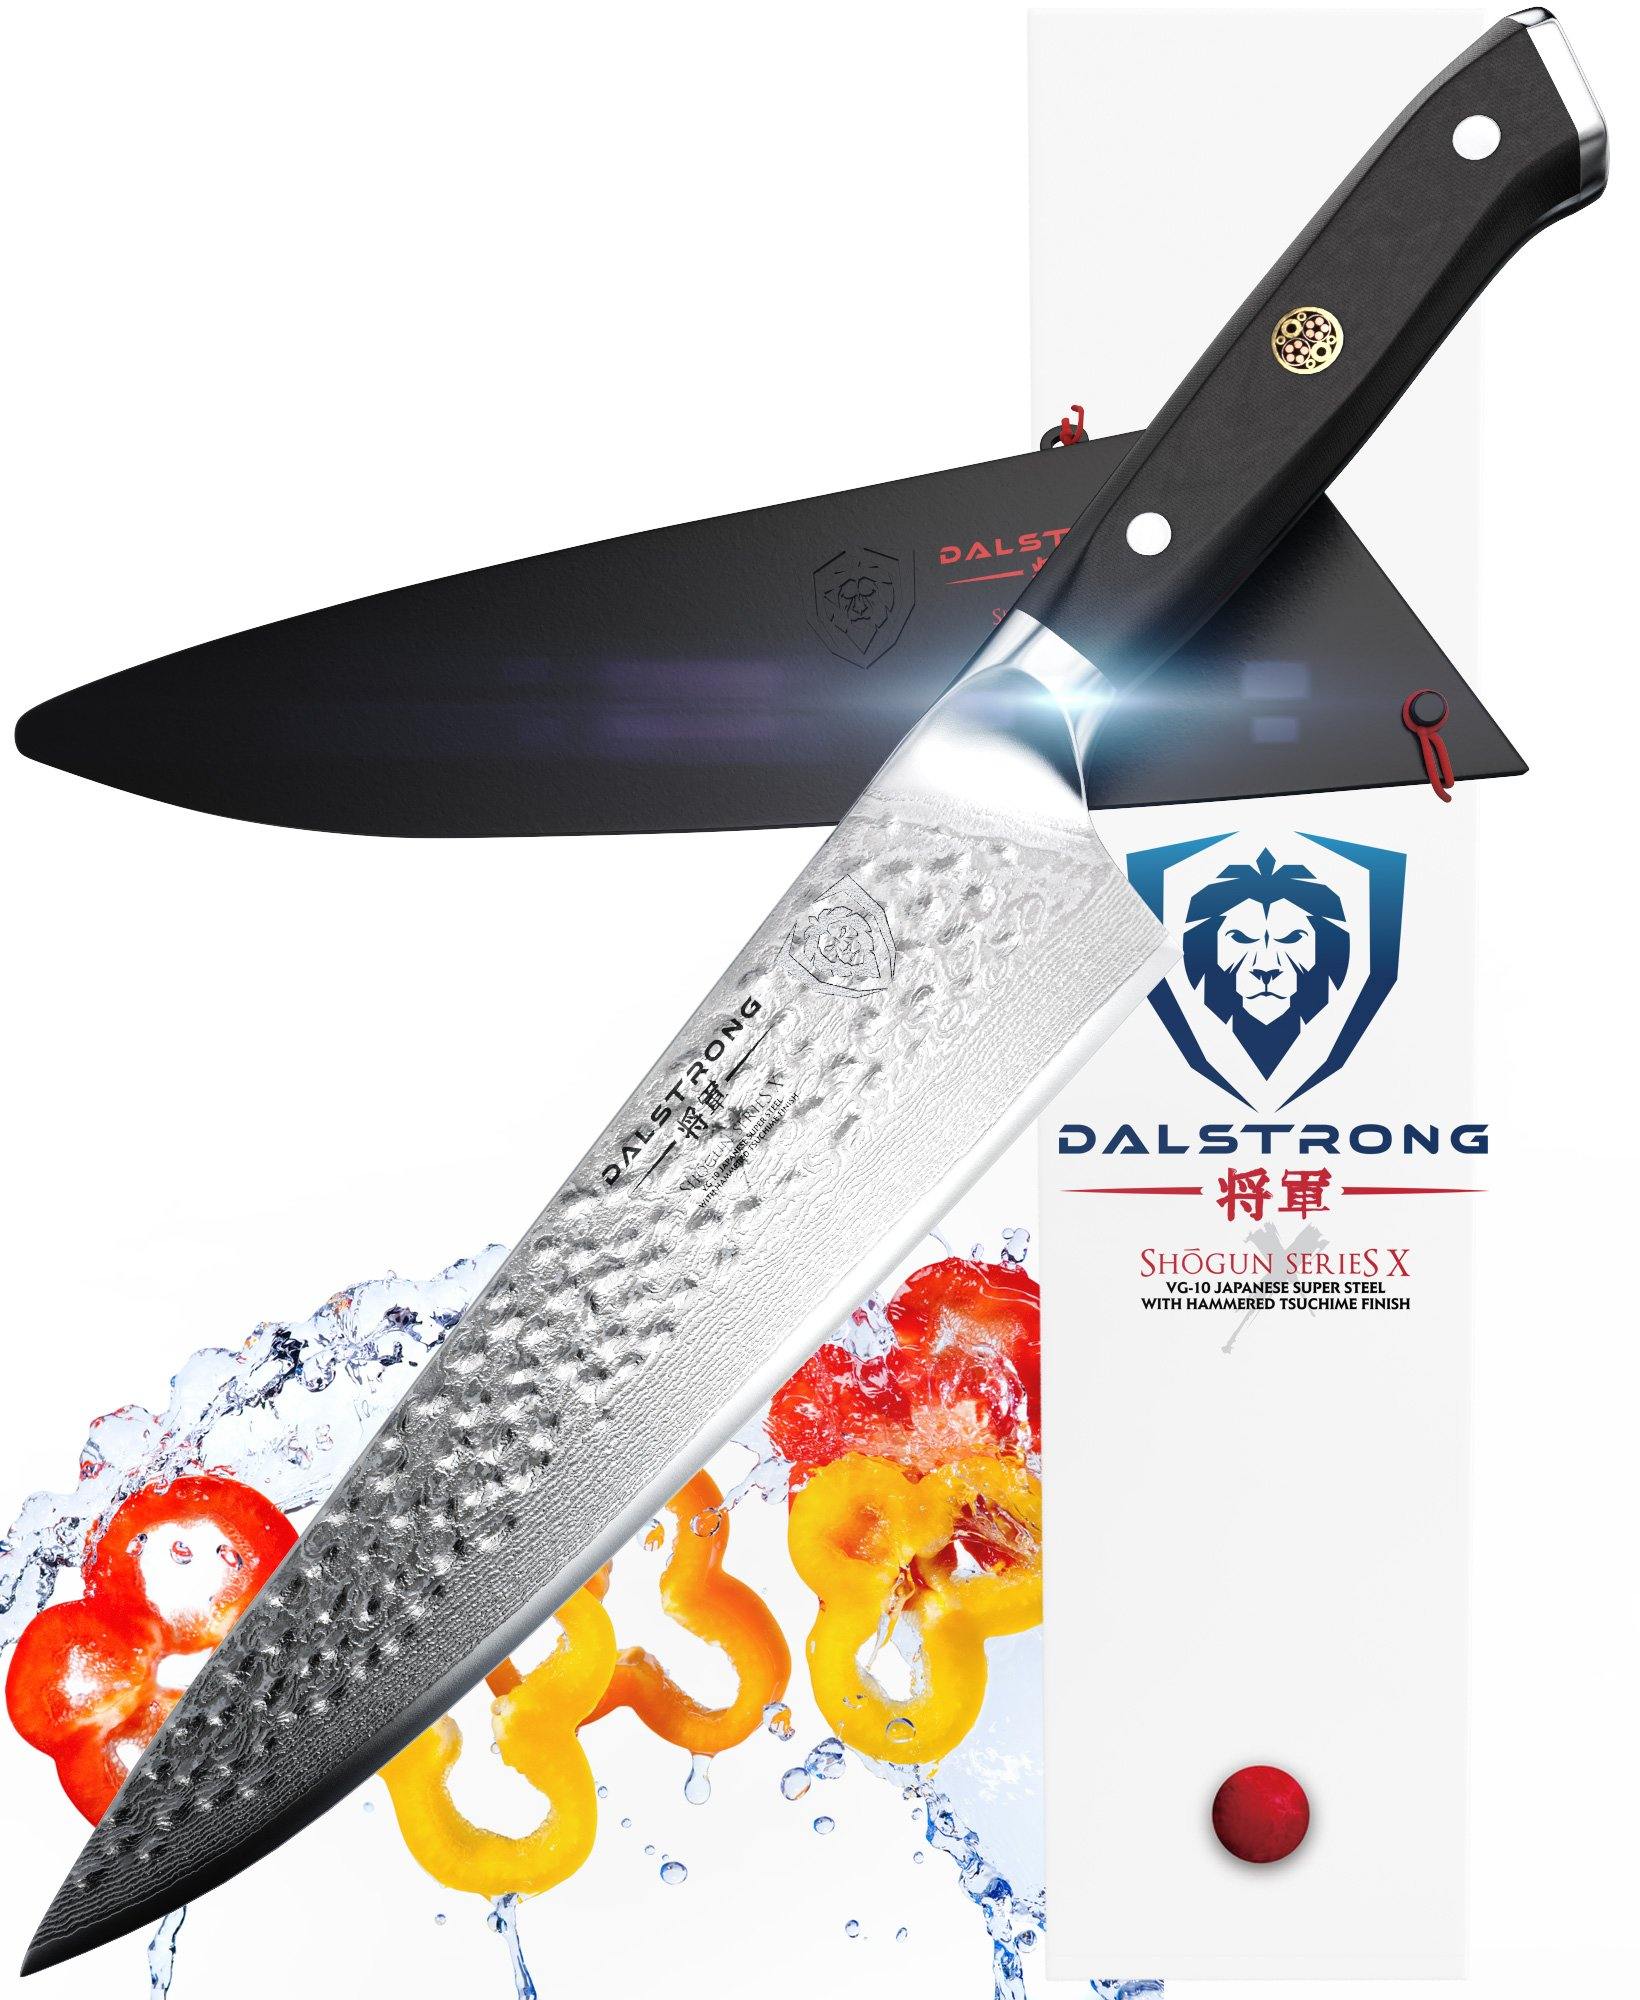 DALSTRONG Chef's Knife - 10.25'' - Large - Shogun Series X Professional Gyuto - Japanese VG10 67-Layers - Hammered Finish - Sheath by Dalstrong